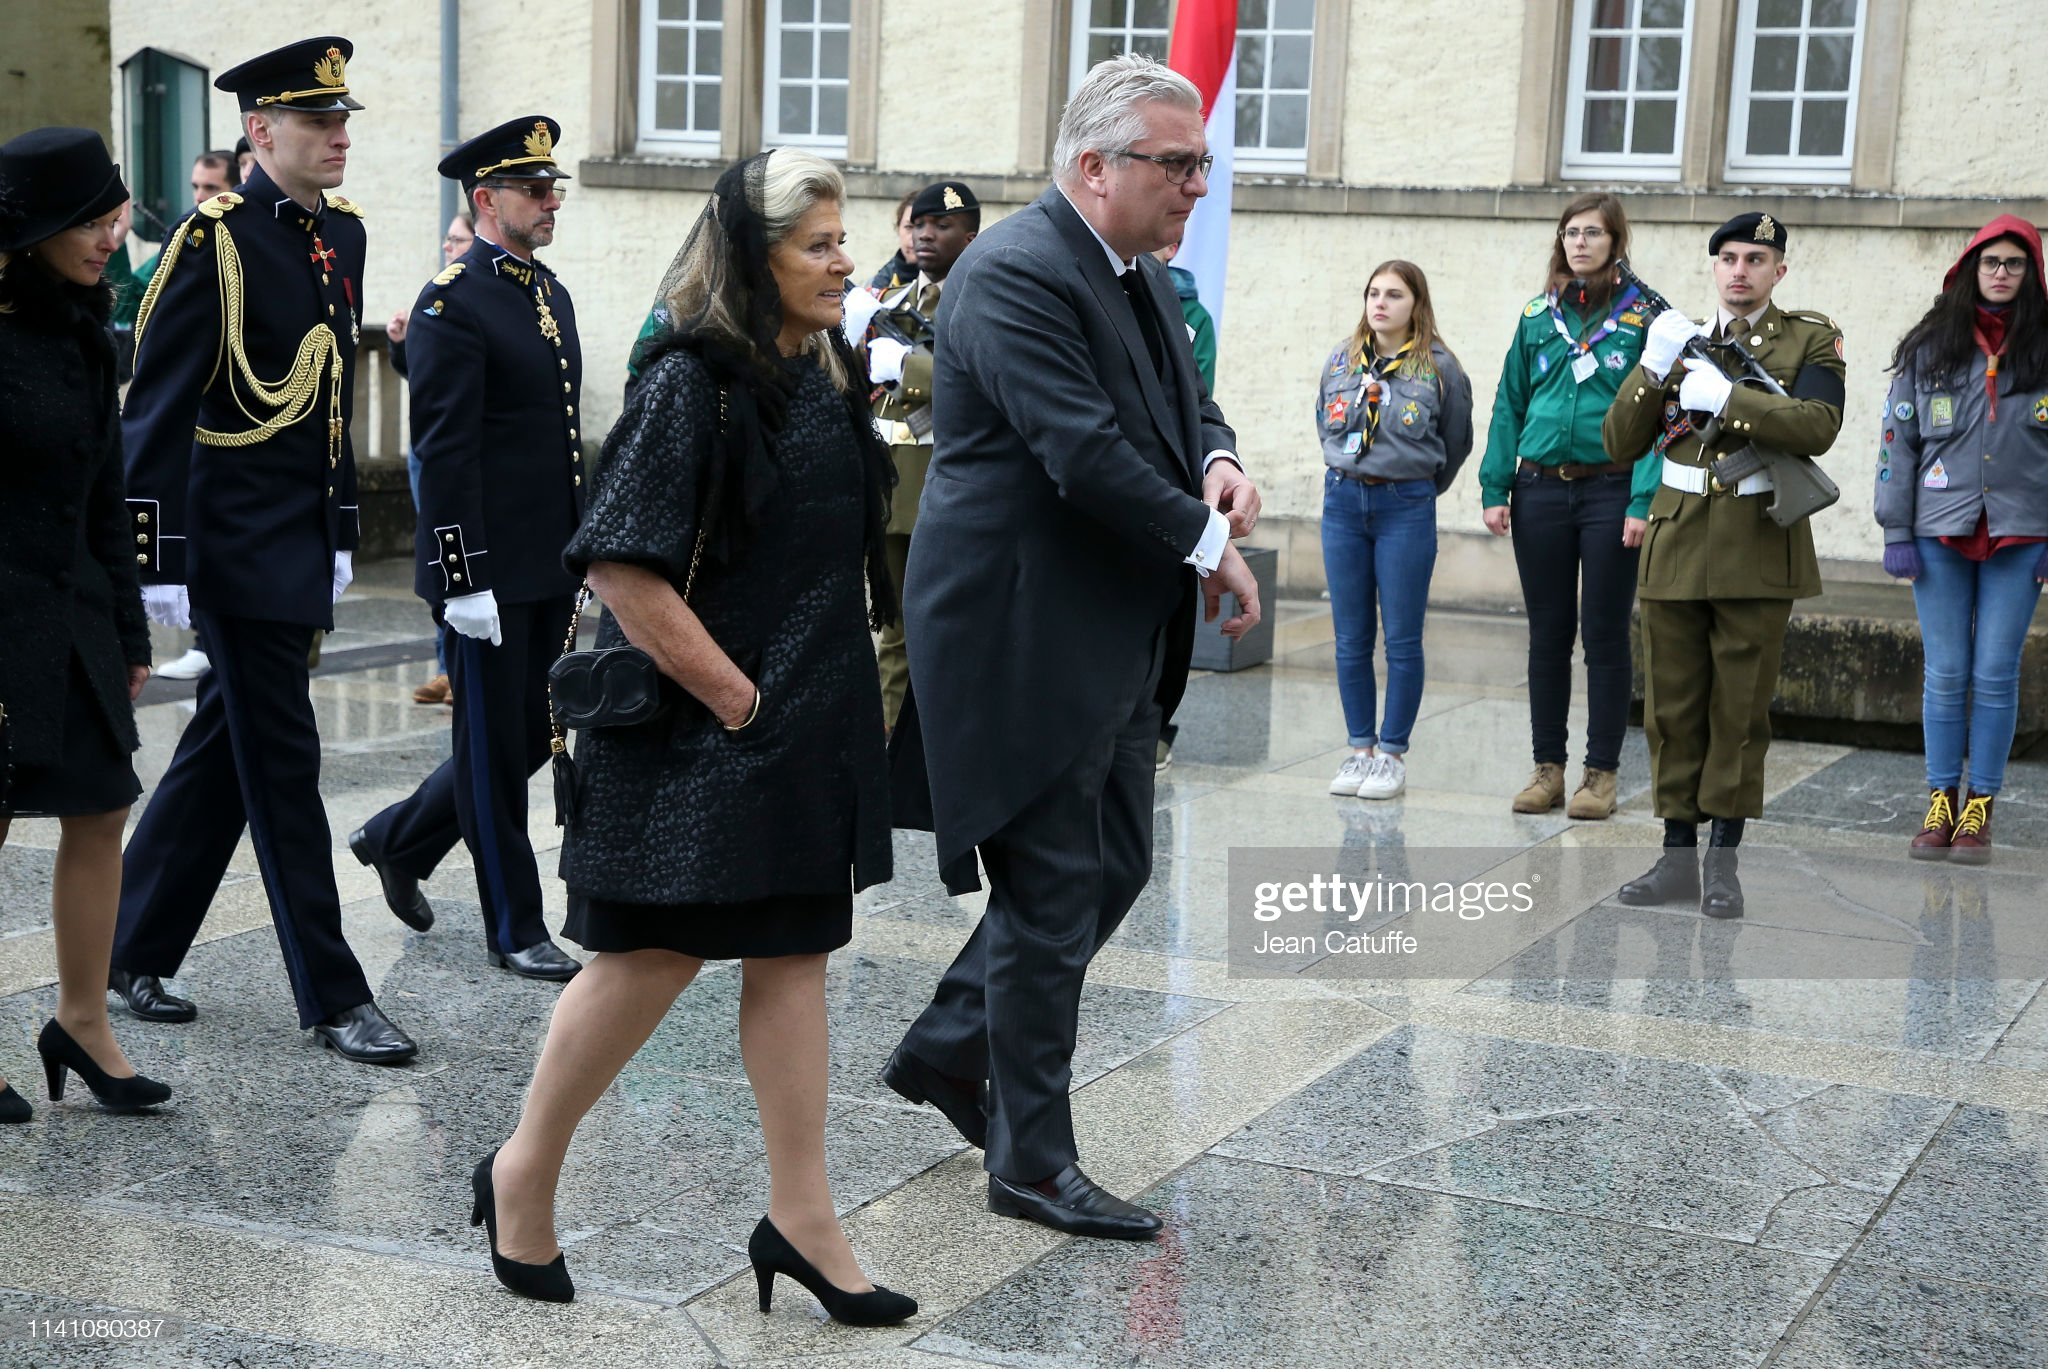 Похороны Великого Герцога Жана https://media.gettyimages.com/photos/prince-laurent-of-belgium-princess-lea-of-belgium-arrive-for-the-of-picture-id1141080387?s=2048x2048